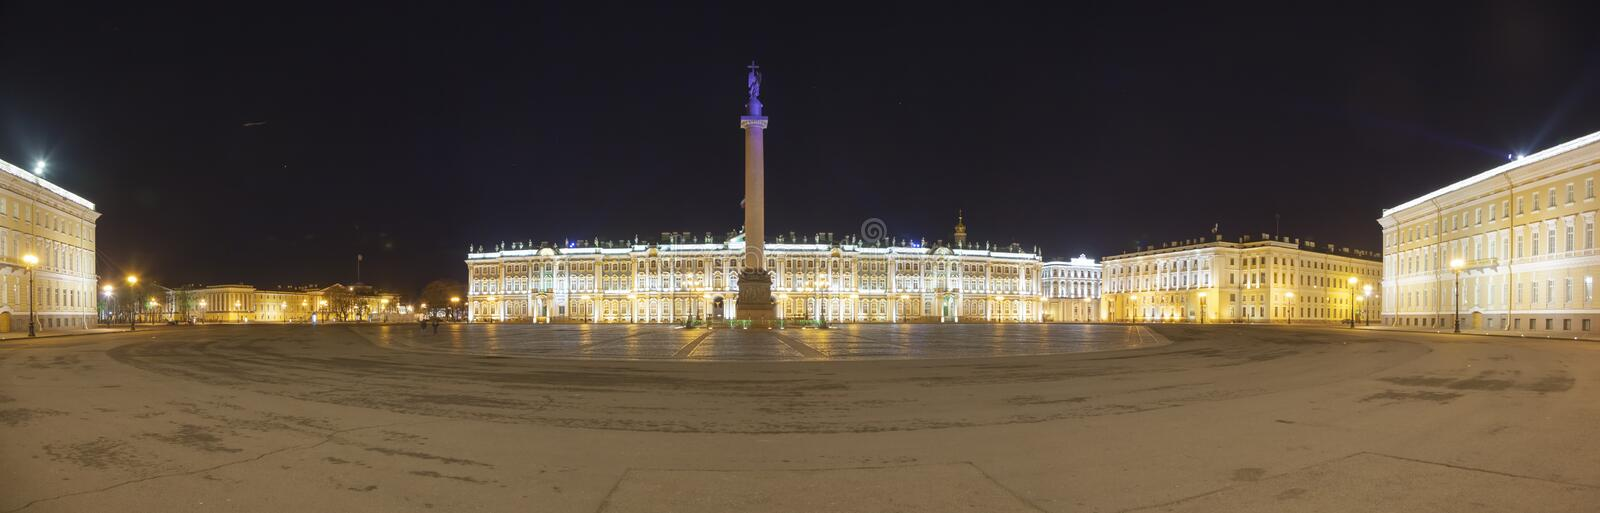 Palace Square in St. Petersburg panoramic view royalty free stock photography